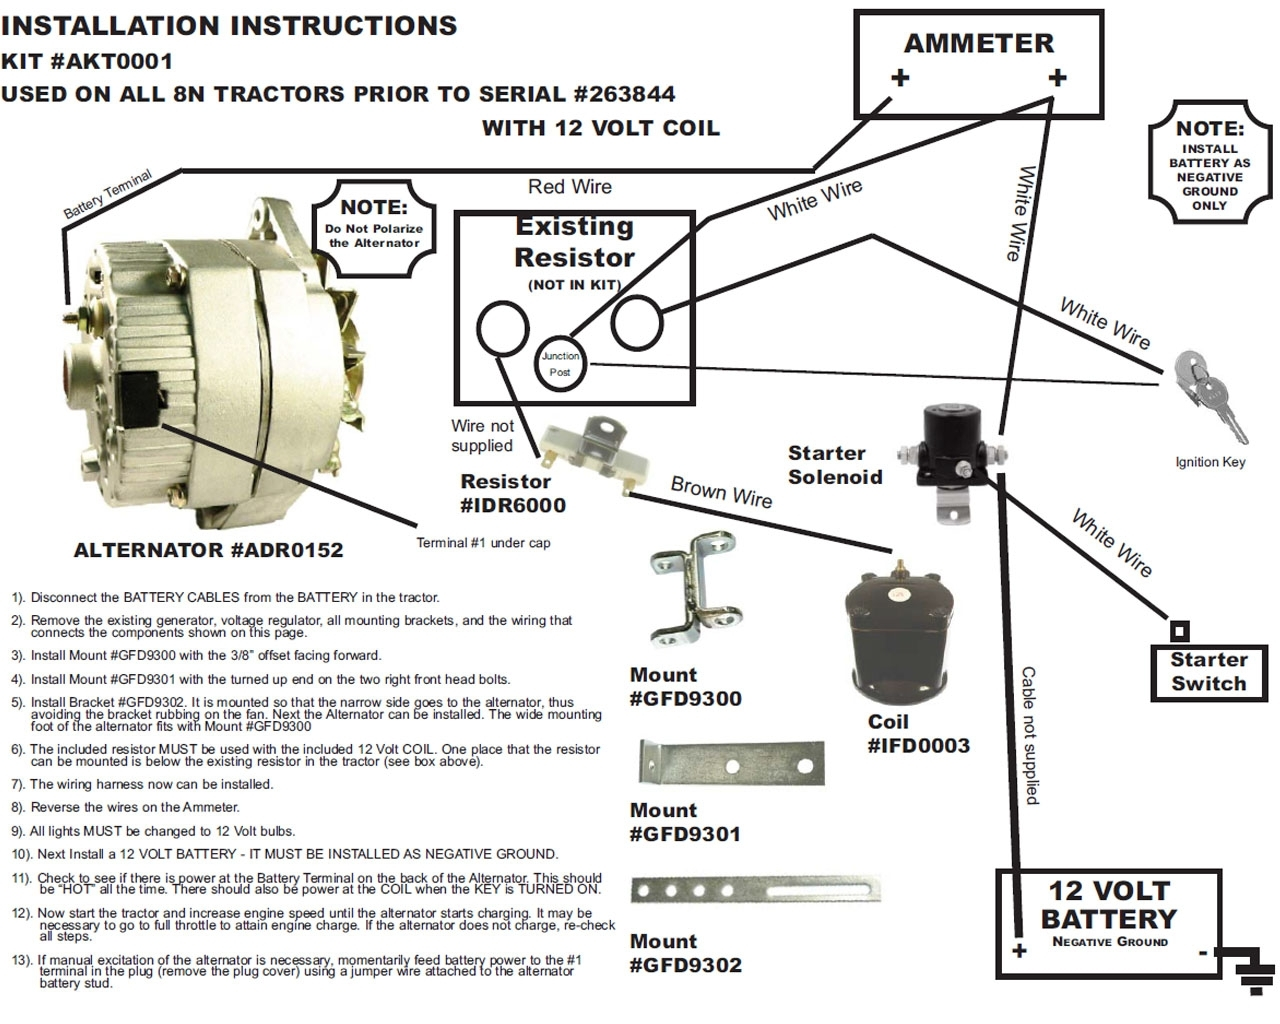 Wiring Diagram For International 656 – The Wiring Diagram pertaining to 6 Volt Positive Ground Wiring Diagram